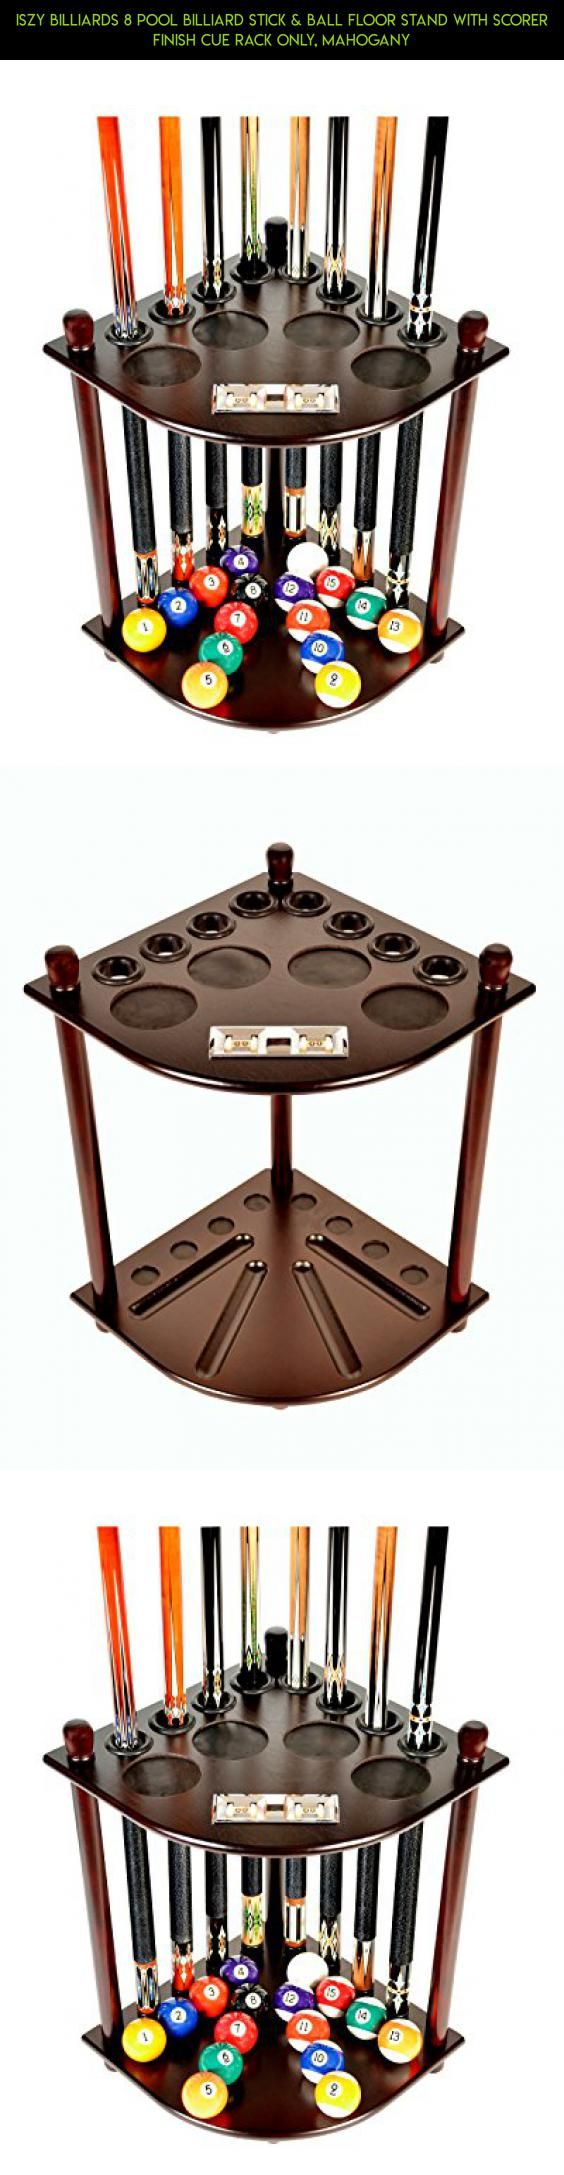 Iszy Billiards 8 Pool Billiard Stick & Ball Floor Stand with Scorer Finish Cue Rack Only, Mahogany #parts #tech #pools #drone #technology #camera #shopping #plans #gadgets #racing #products #balls #fpv #kit